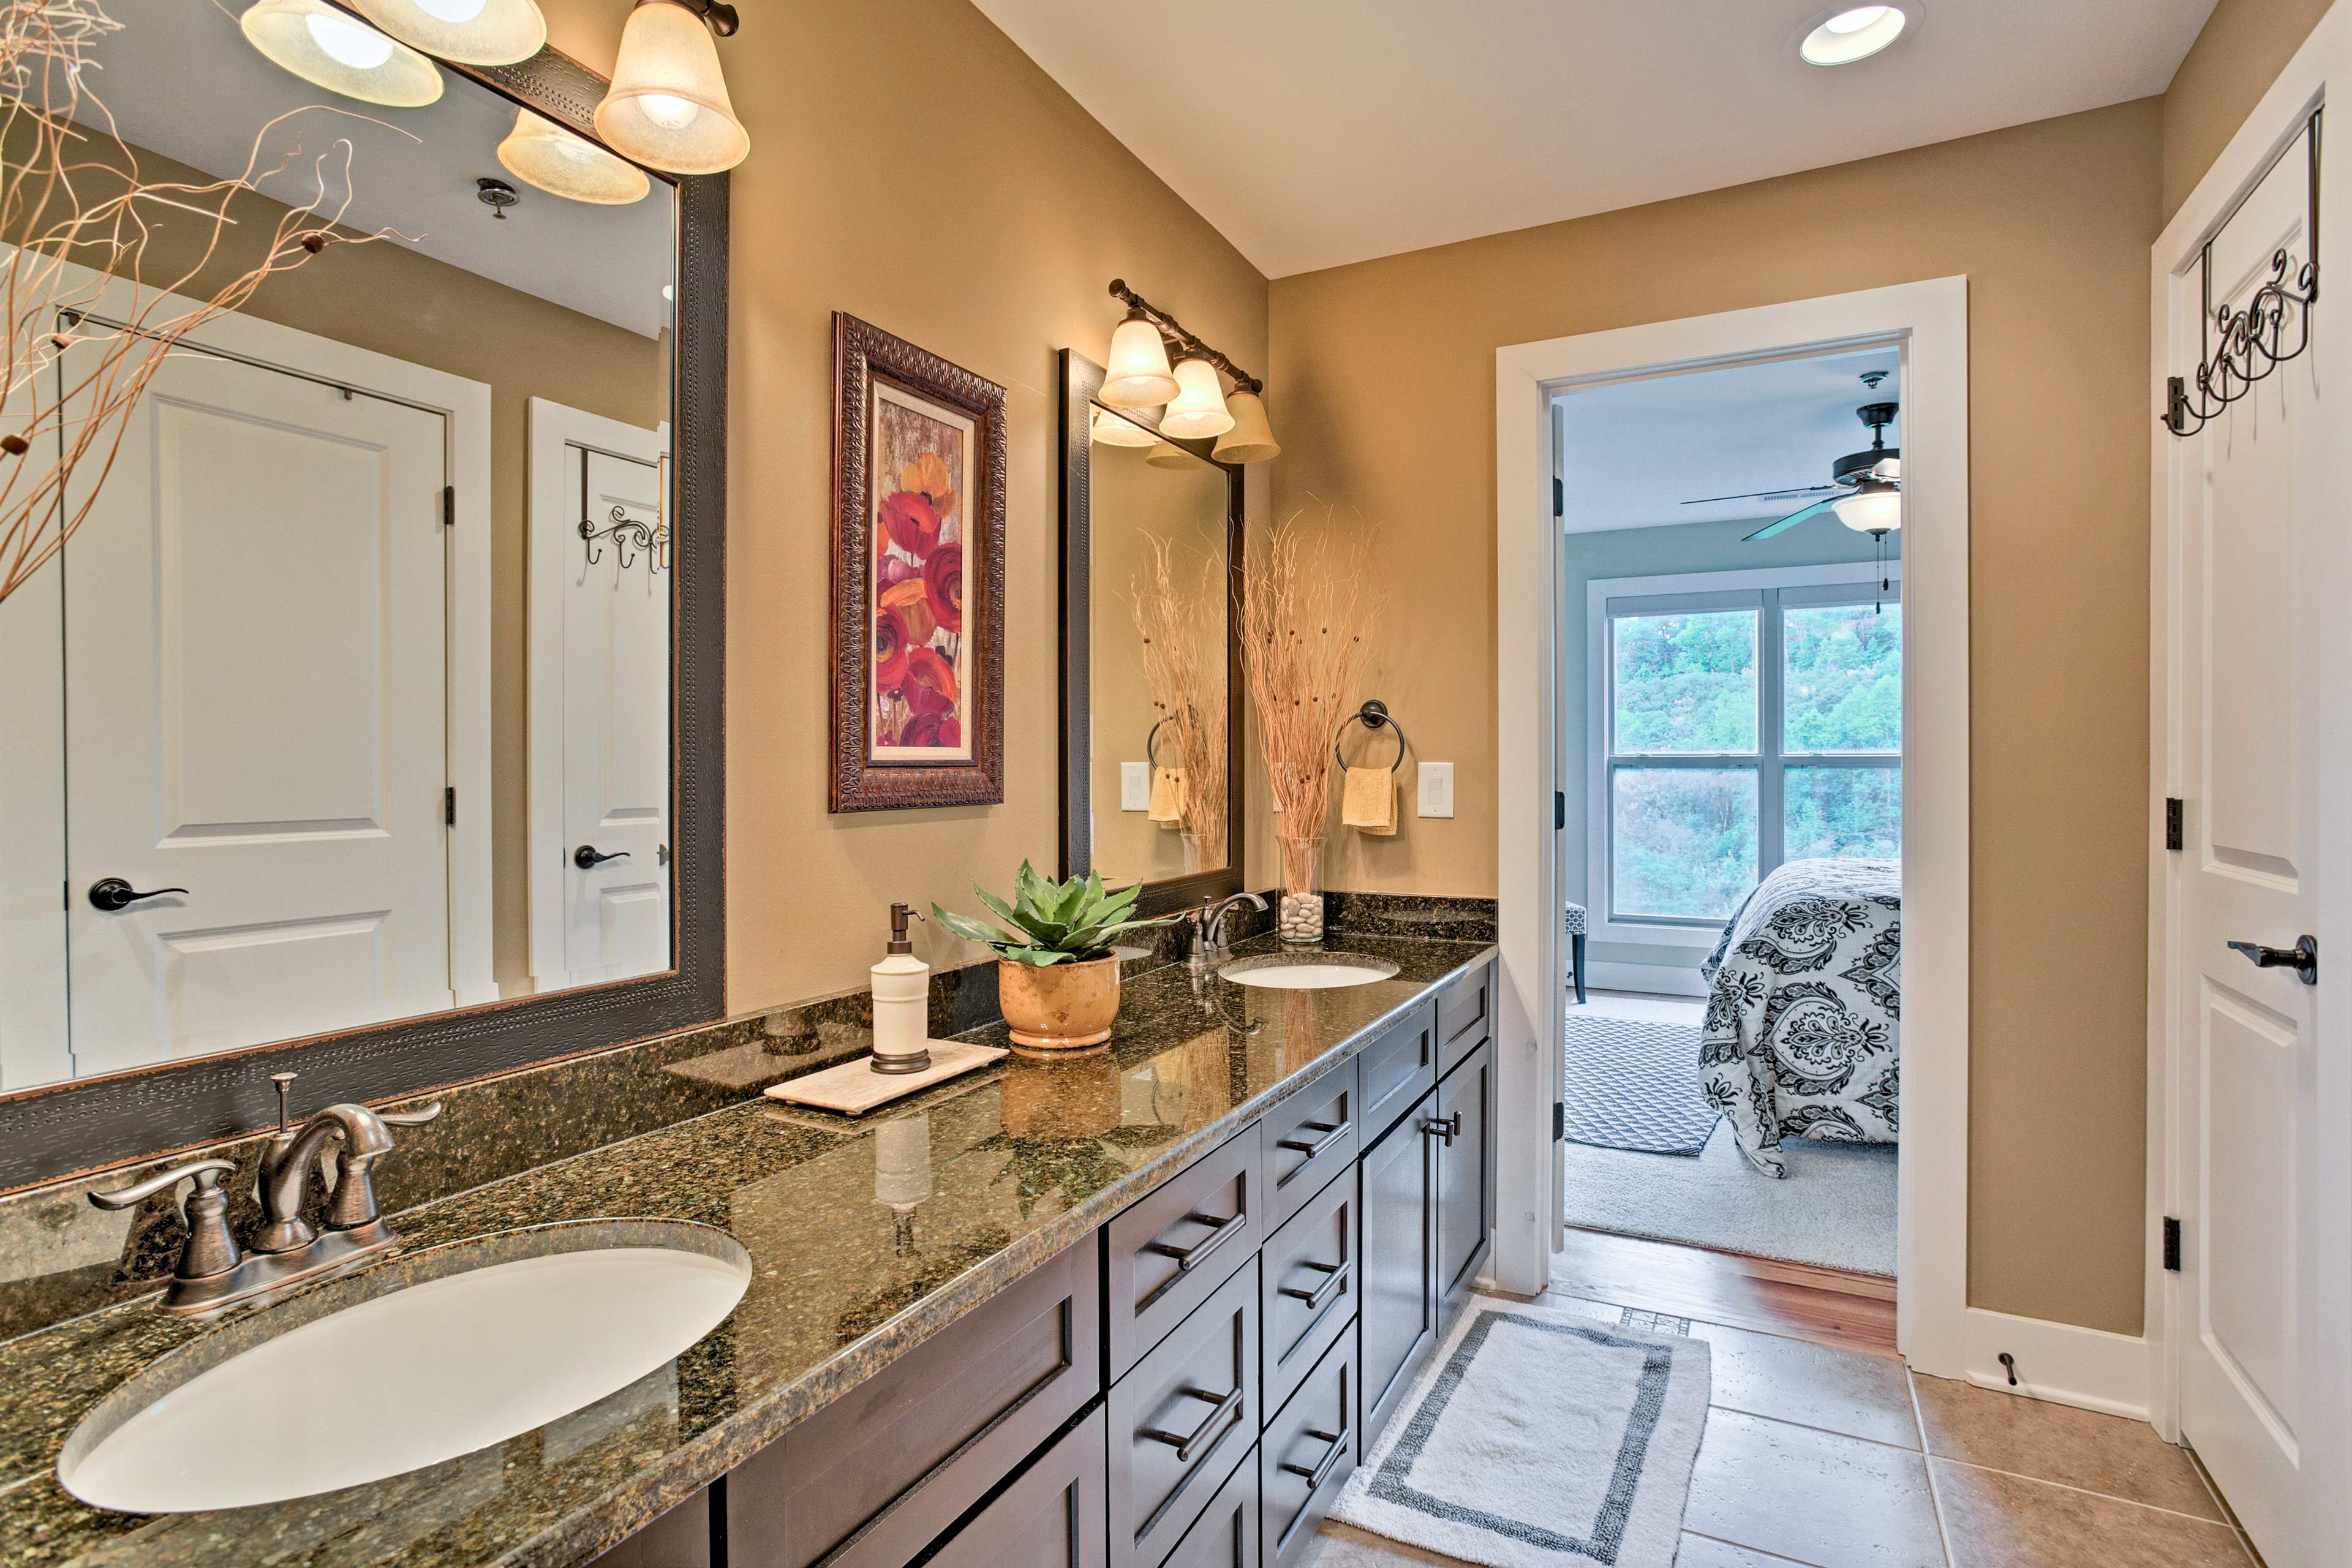 The Jack-and-Jill bathroom also includes a double vanity.